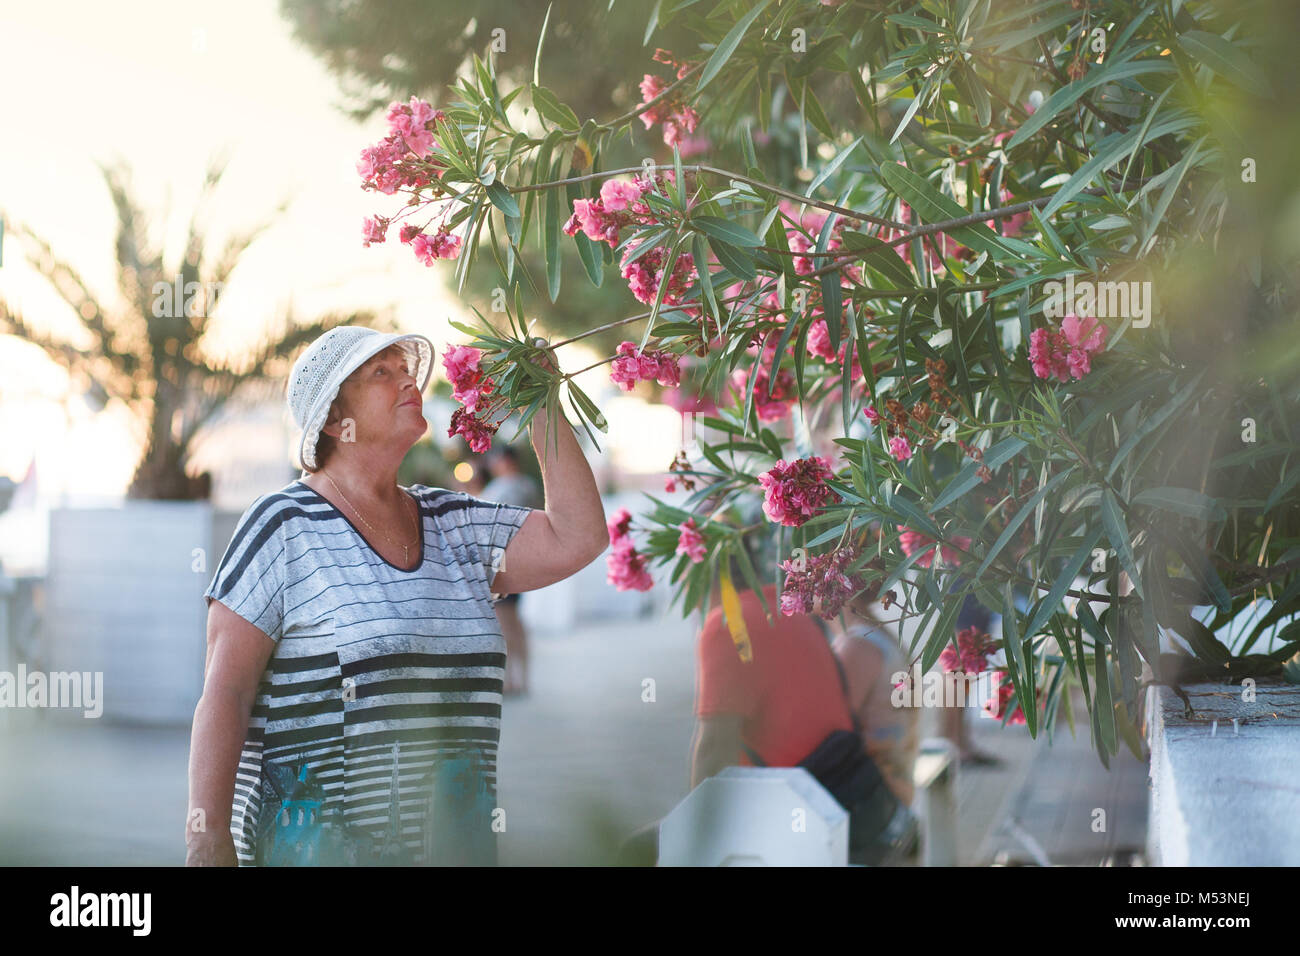 Elegant mature woman holding blooming branch. Blossom spring concept, aroma therapy. - Stock Image